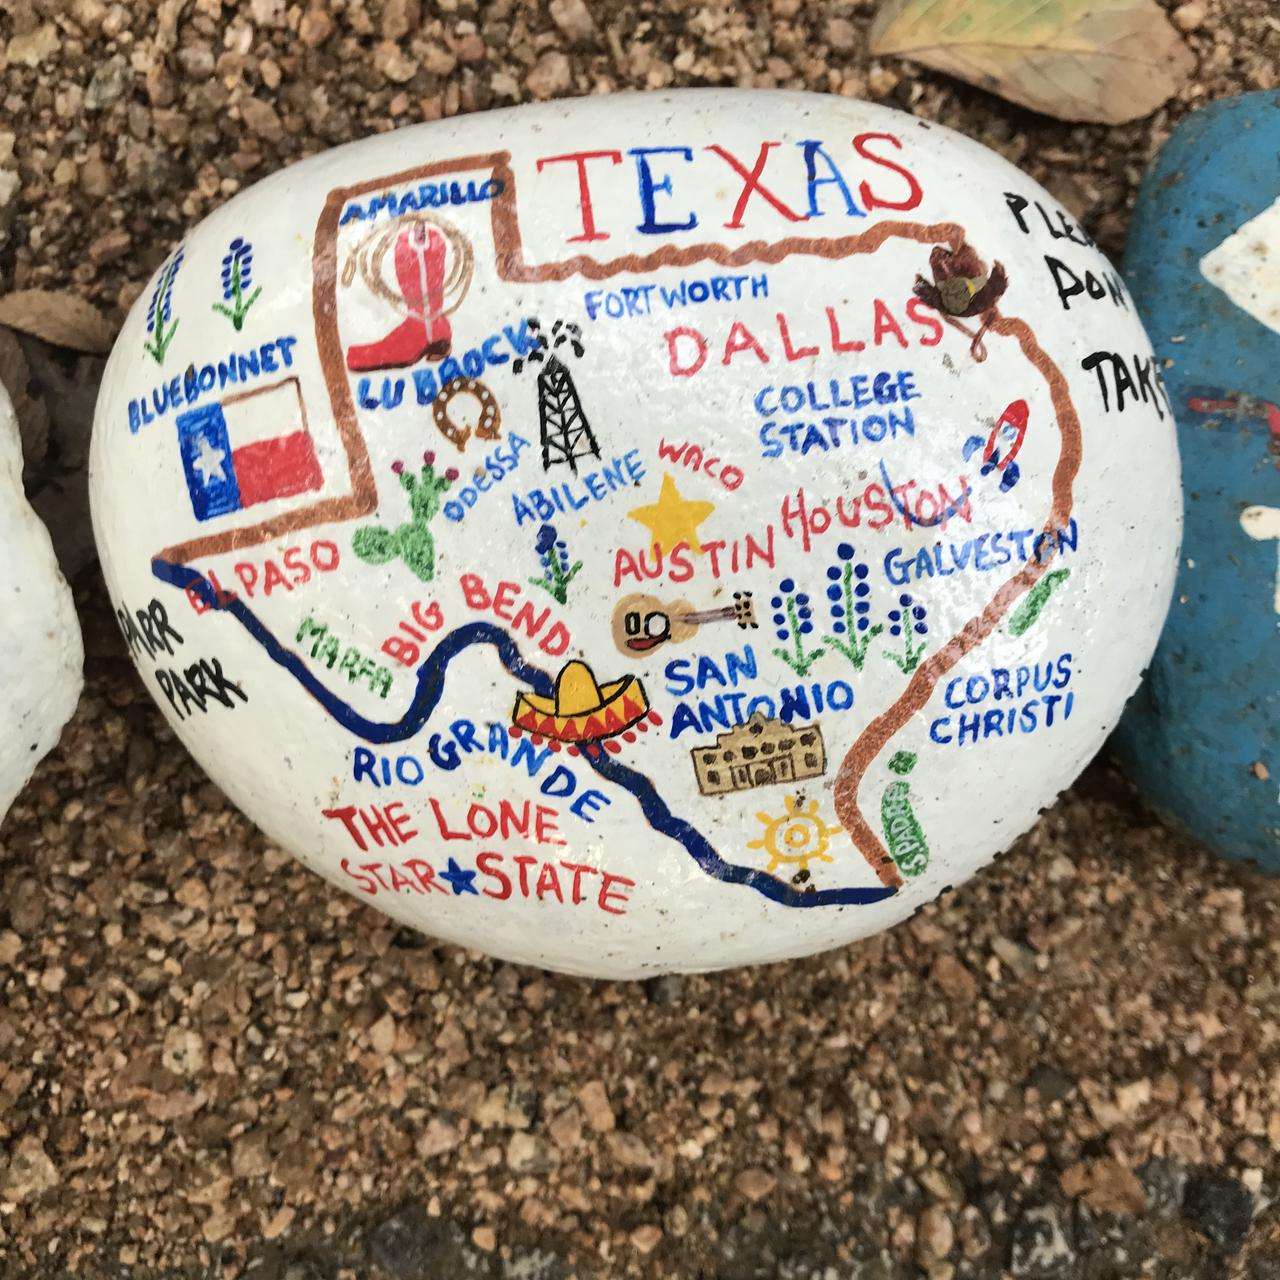 A rock with major Texas cities and regions